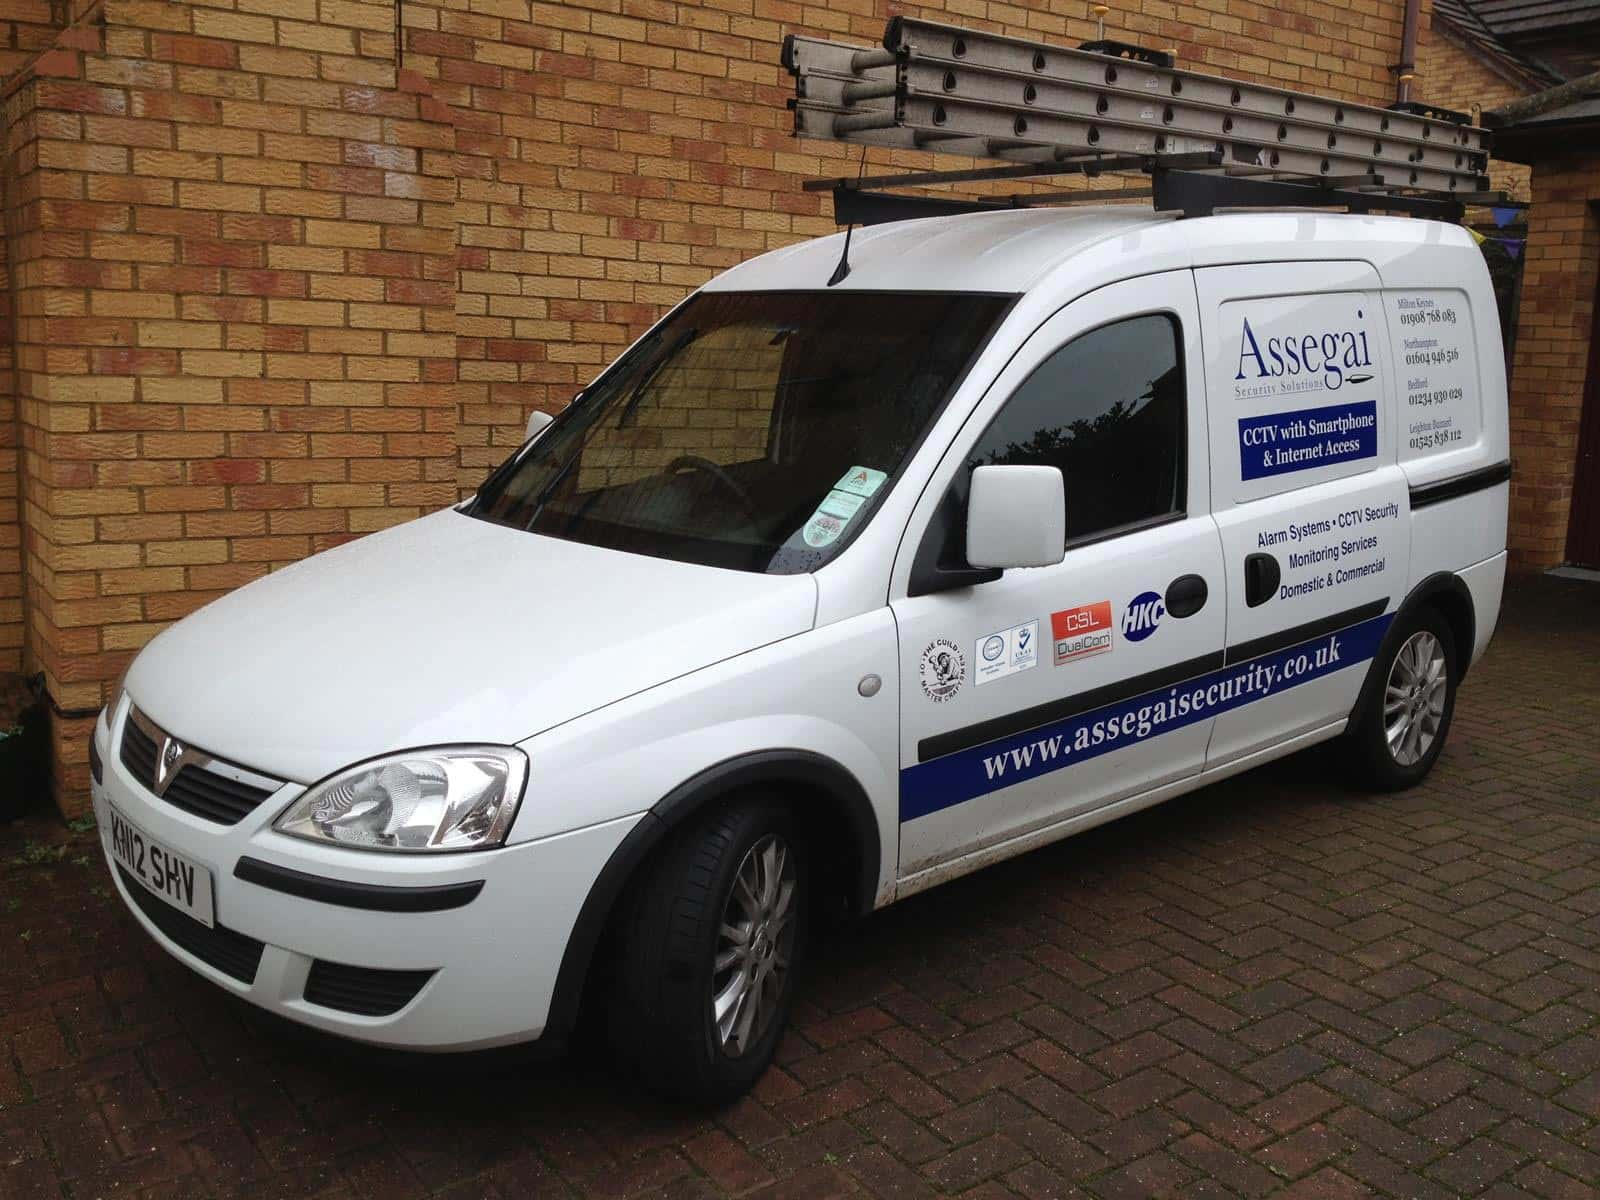 An image showing an Assegai Security systems Van